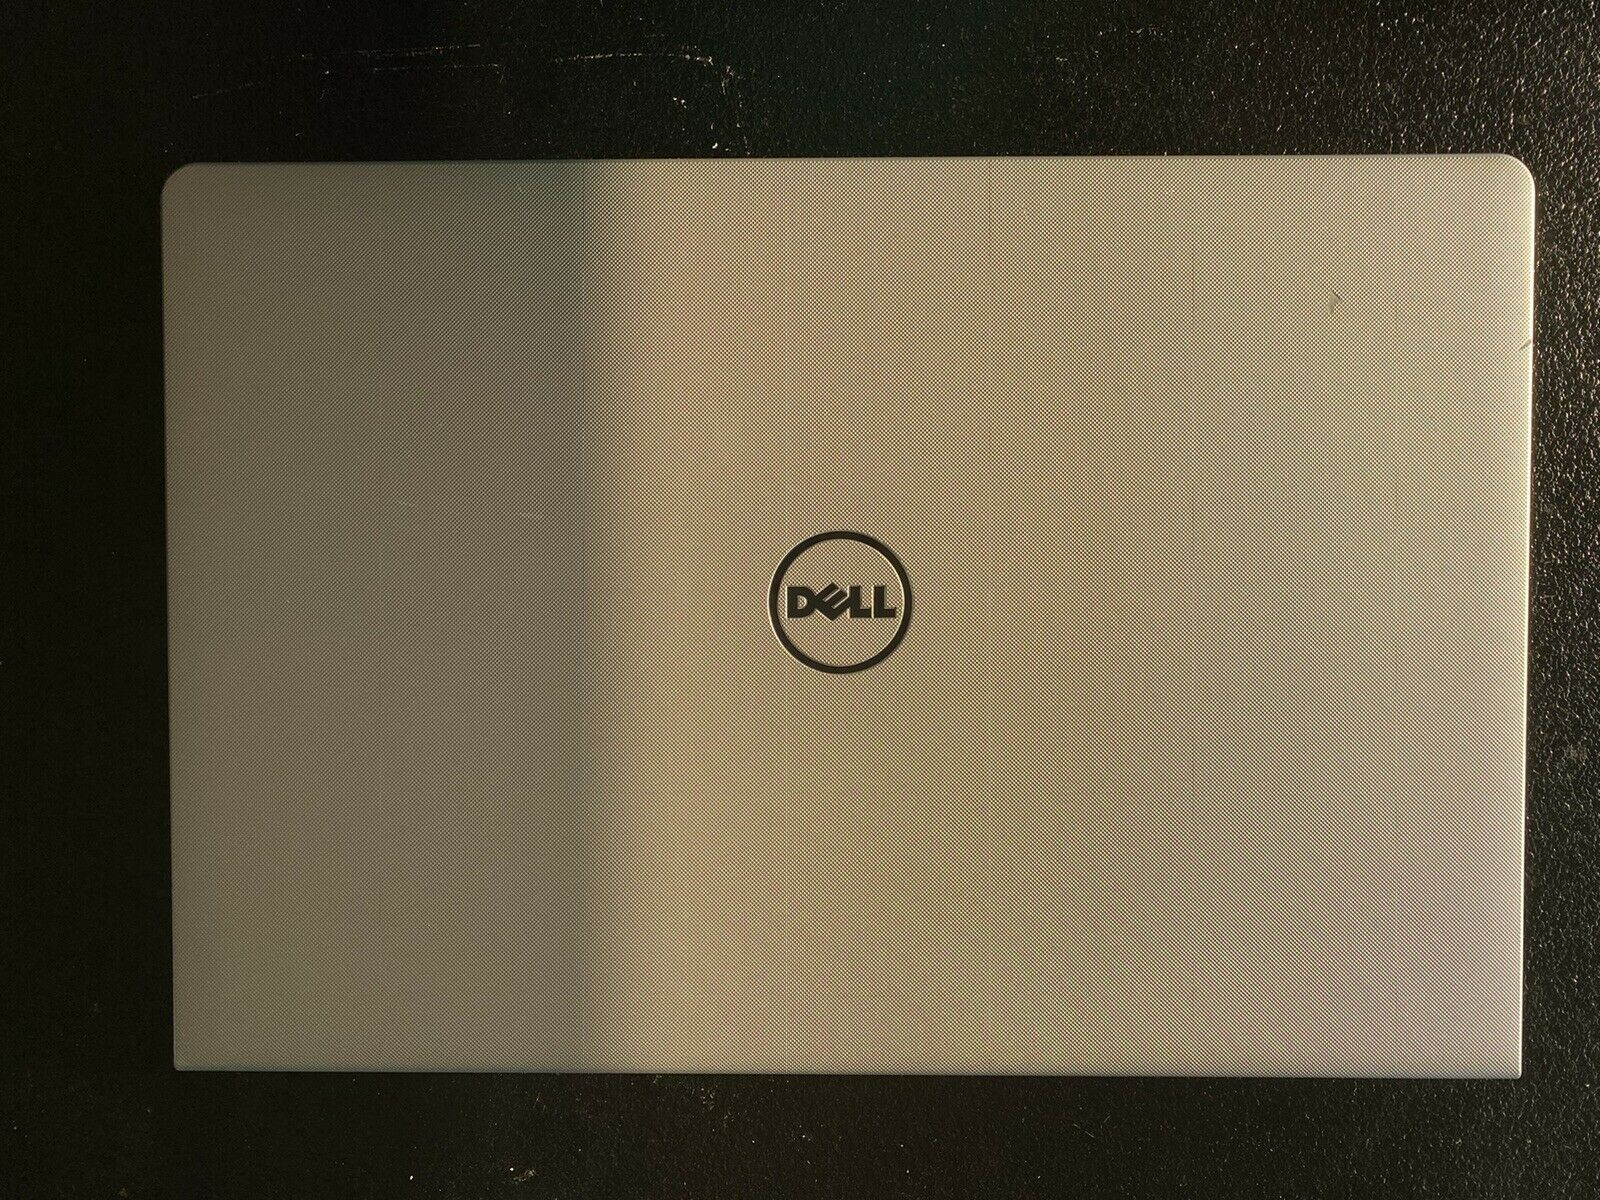 Dell Inspiron 15 5000 Series 15 6 1tb Hdd Intel Core I5 6th Gen 2 3 Ghz 8 Gb Laptop Silver I5559 4682slv For Sale Online Ebay